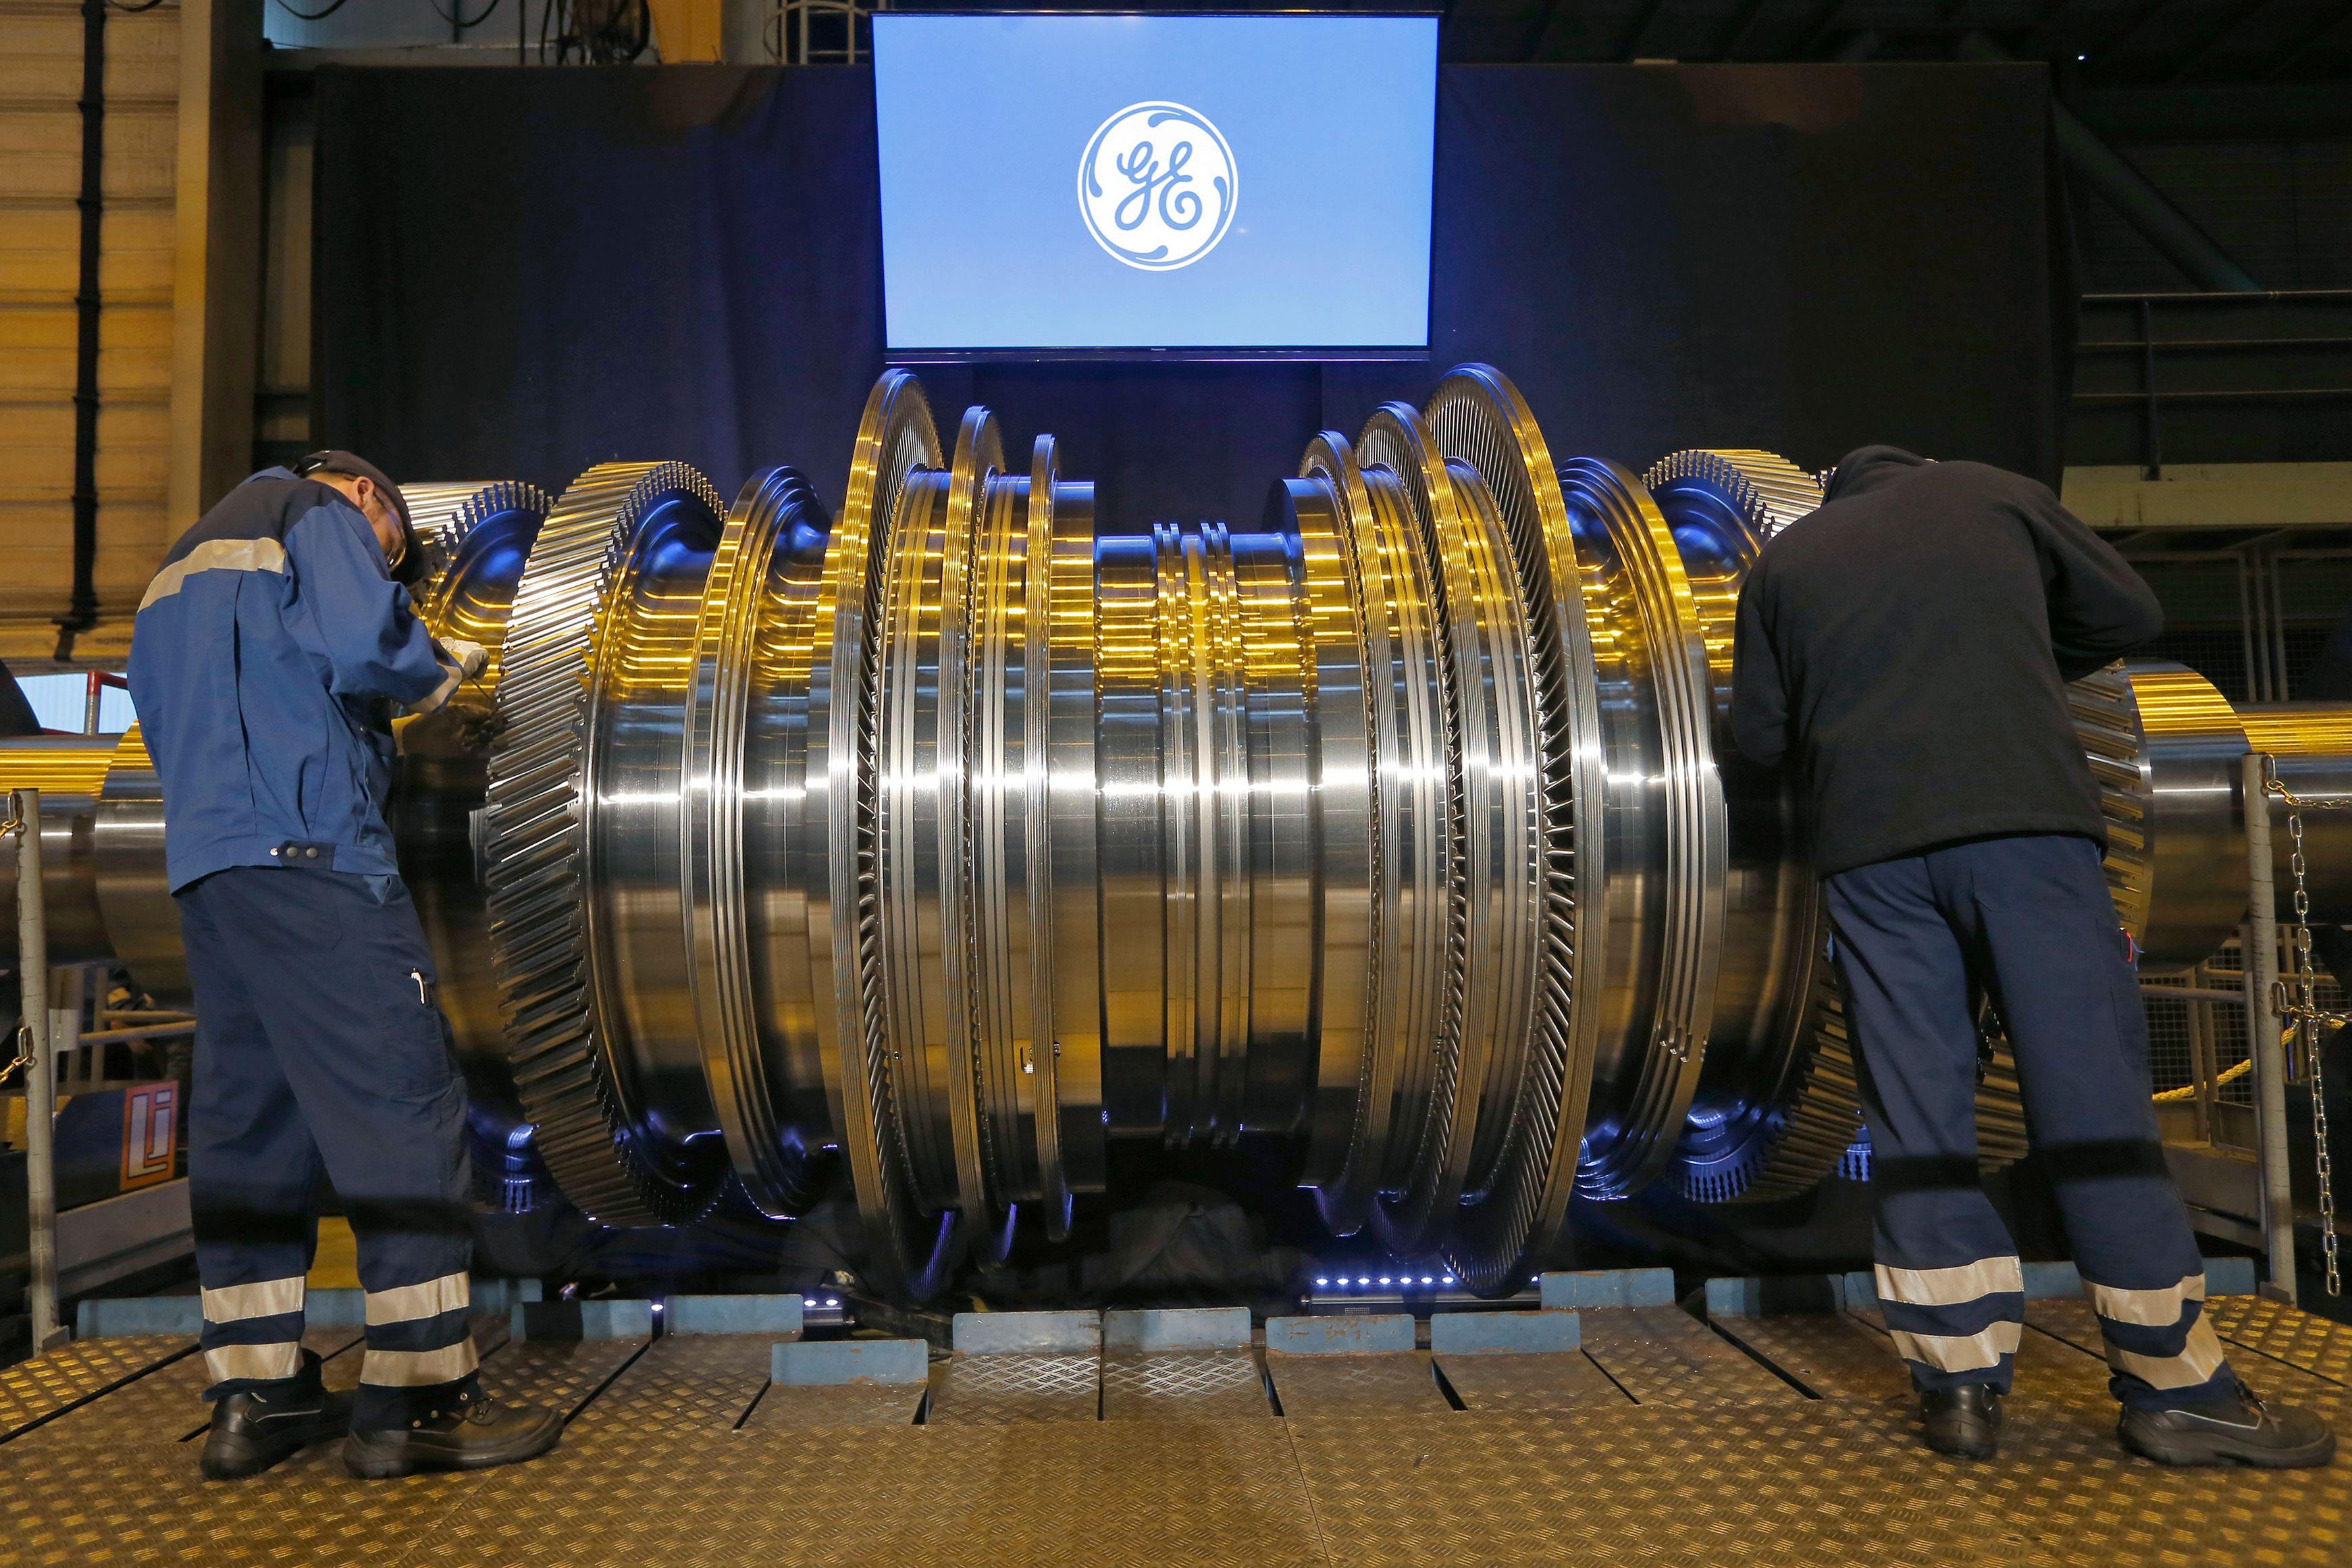 Employees work on a General Electric turbine.